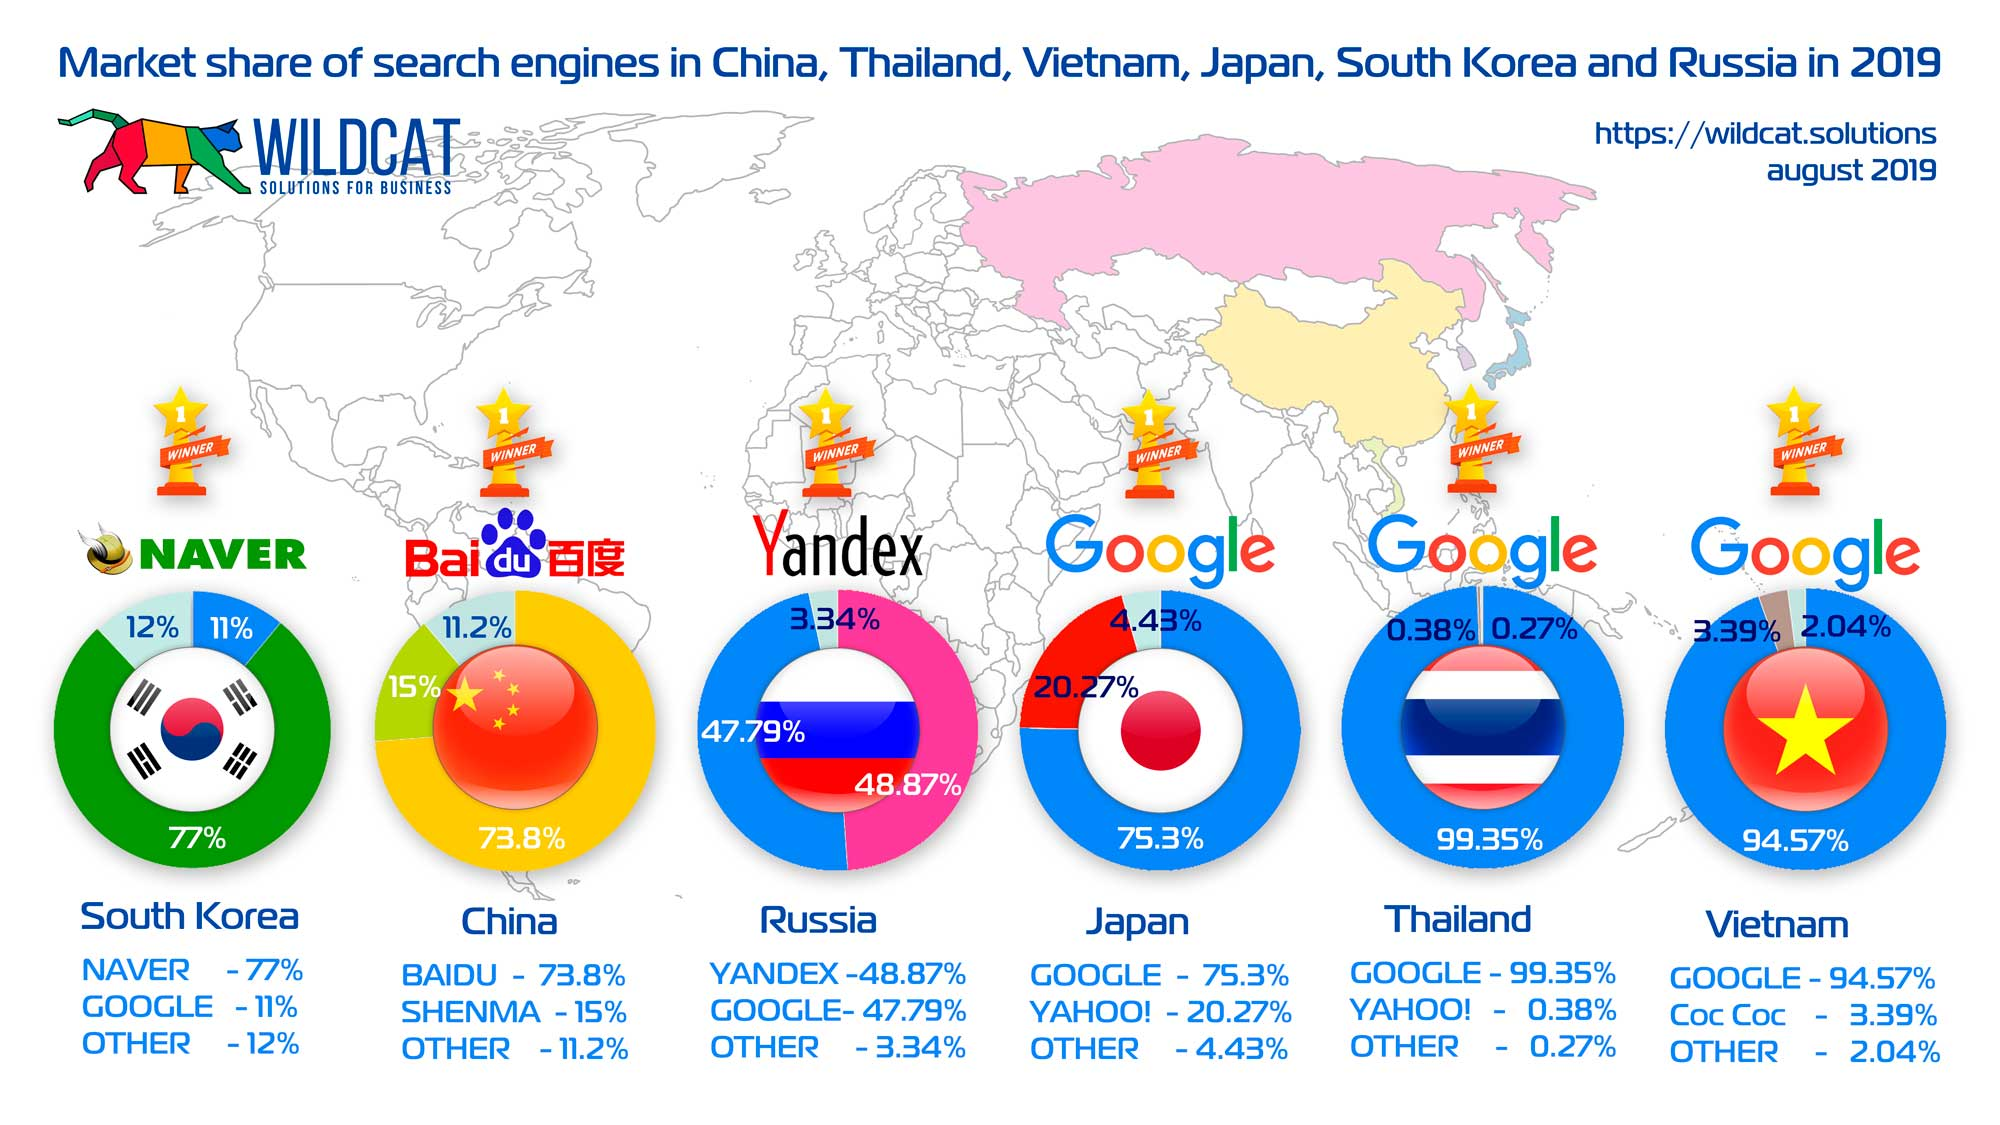 Market share of search engines in China, Thailand, Vietnam, Japan, South Korea and Russia in 2019